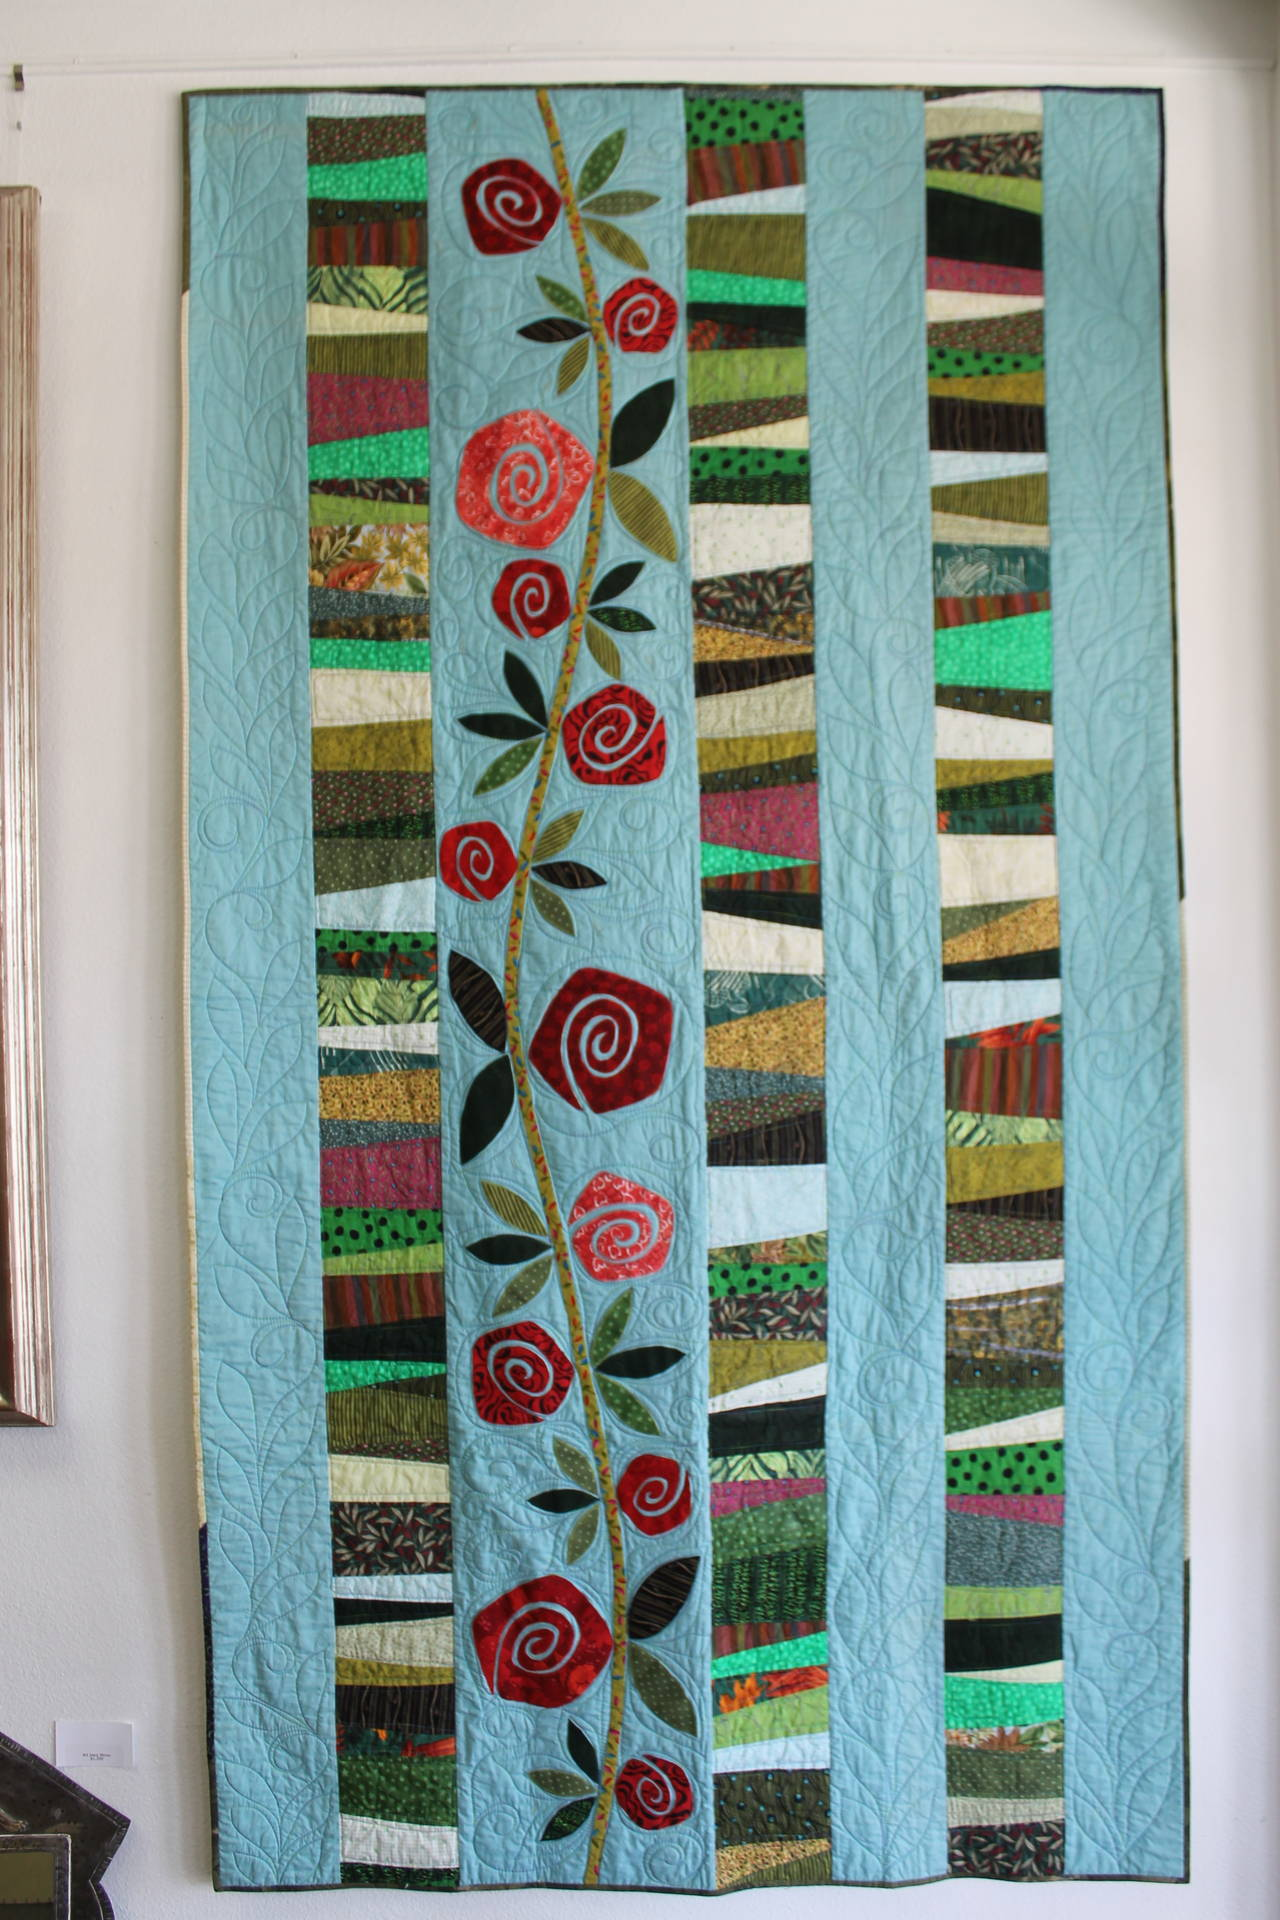 Quilt Reminiscent Of Charles Rennie Mackintosh For Sale